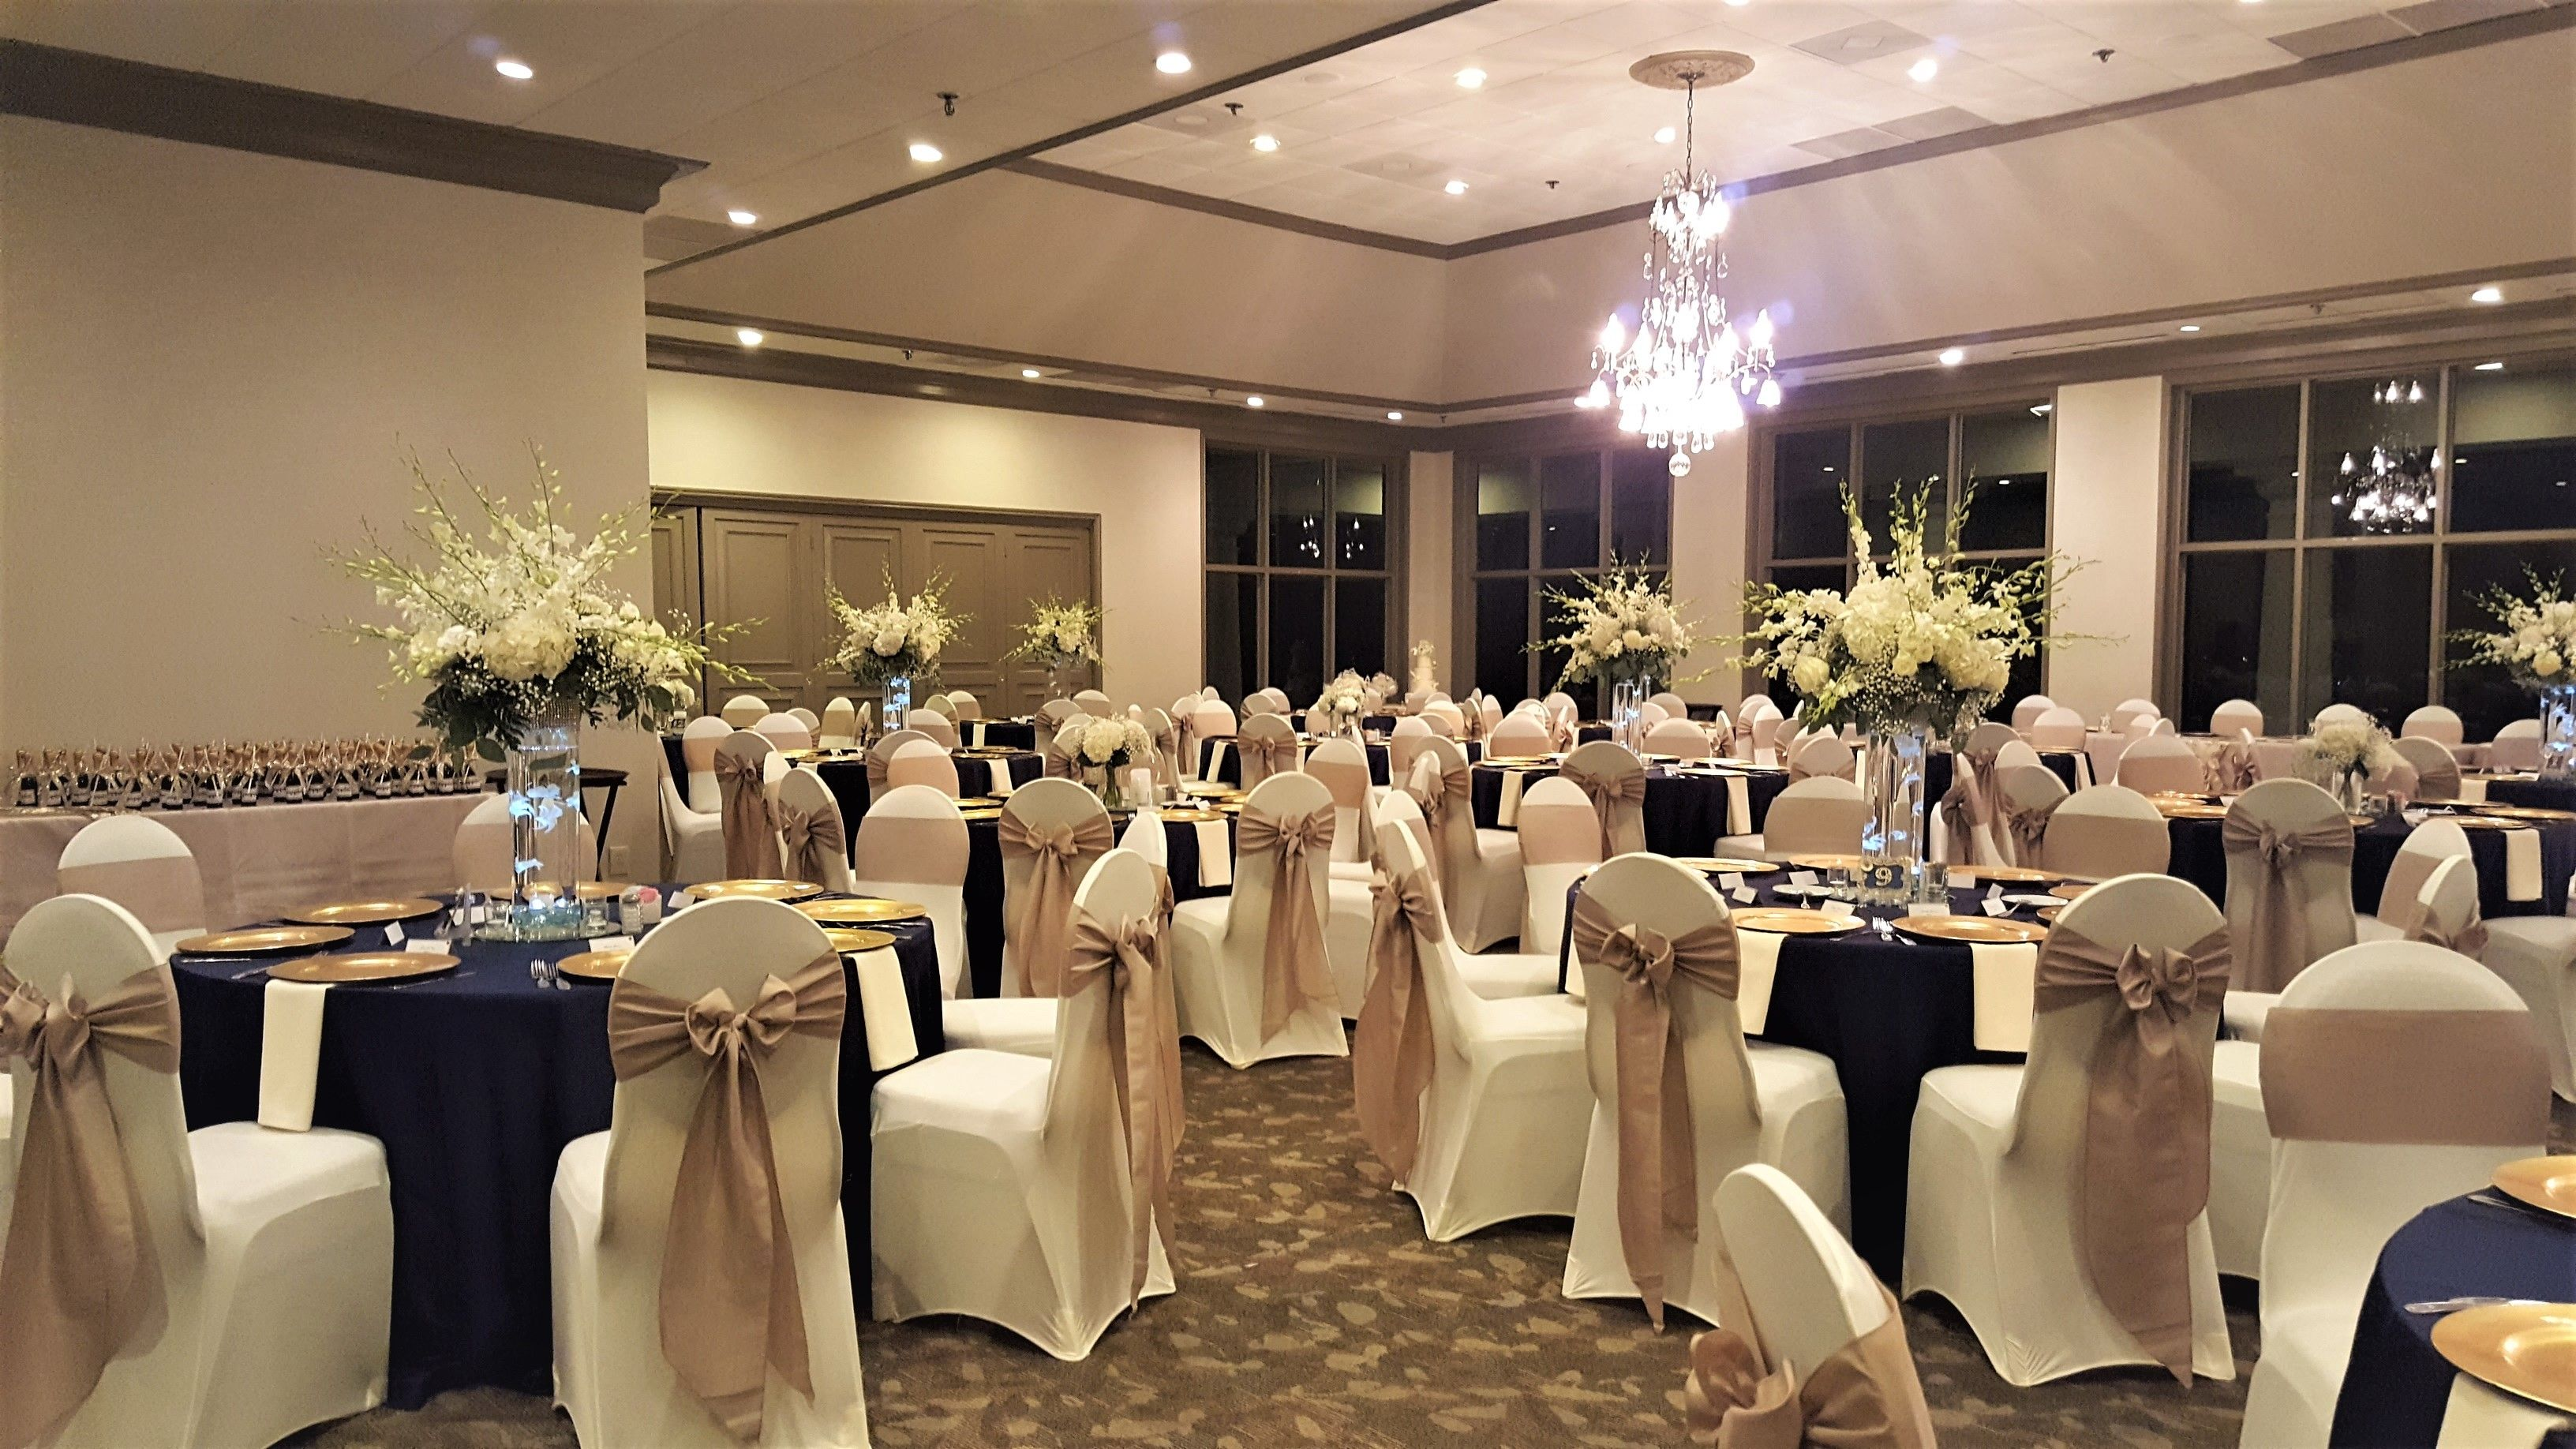 ivory chair covers with gold sash for headrest wedding reception spandex